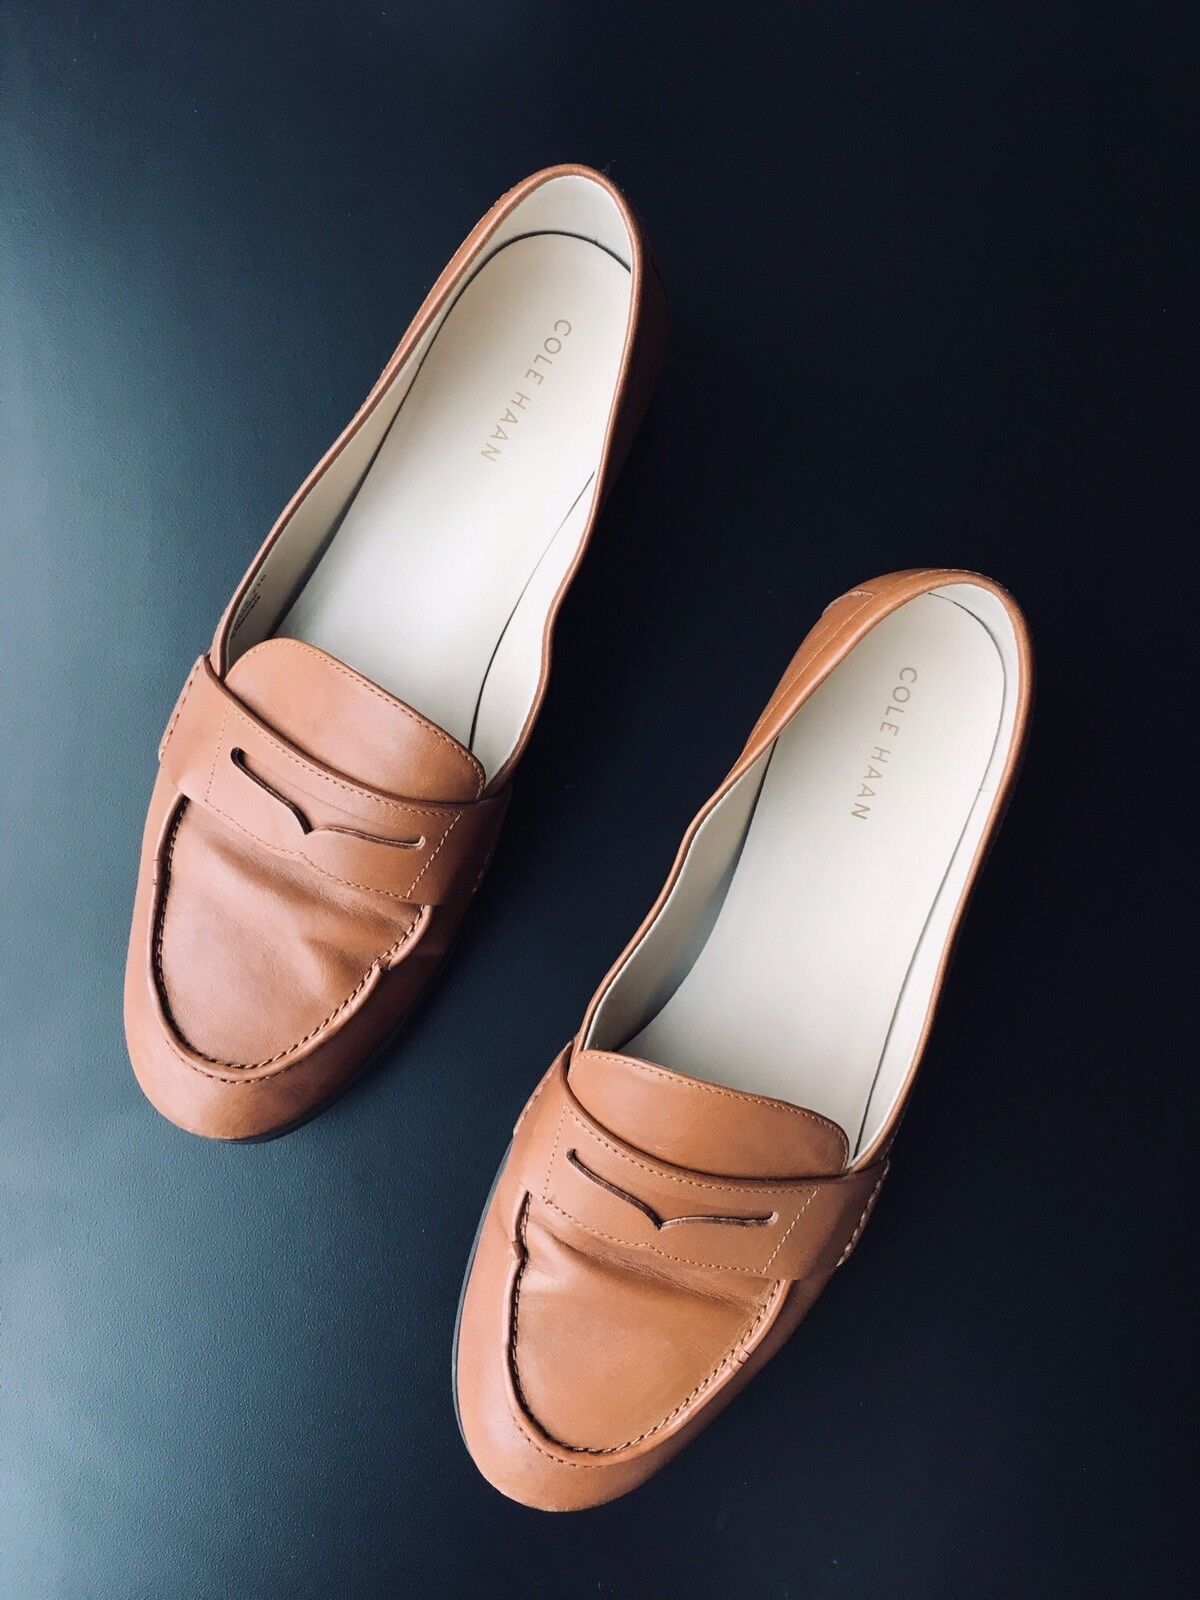 Cole Haan Wouomo Pinch Grand Penny Loafer Flat, British Tan Leather, 7.5 B US